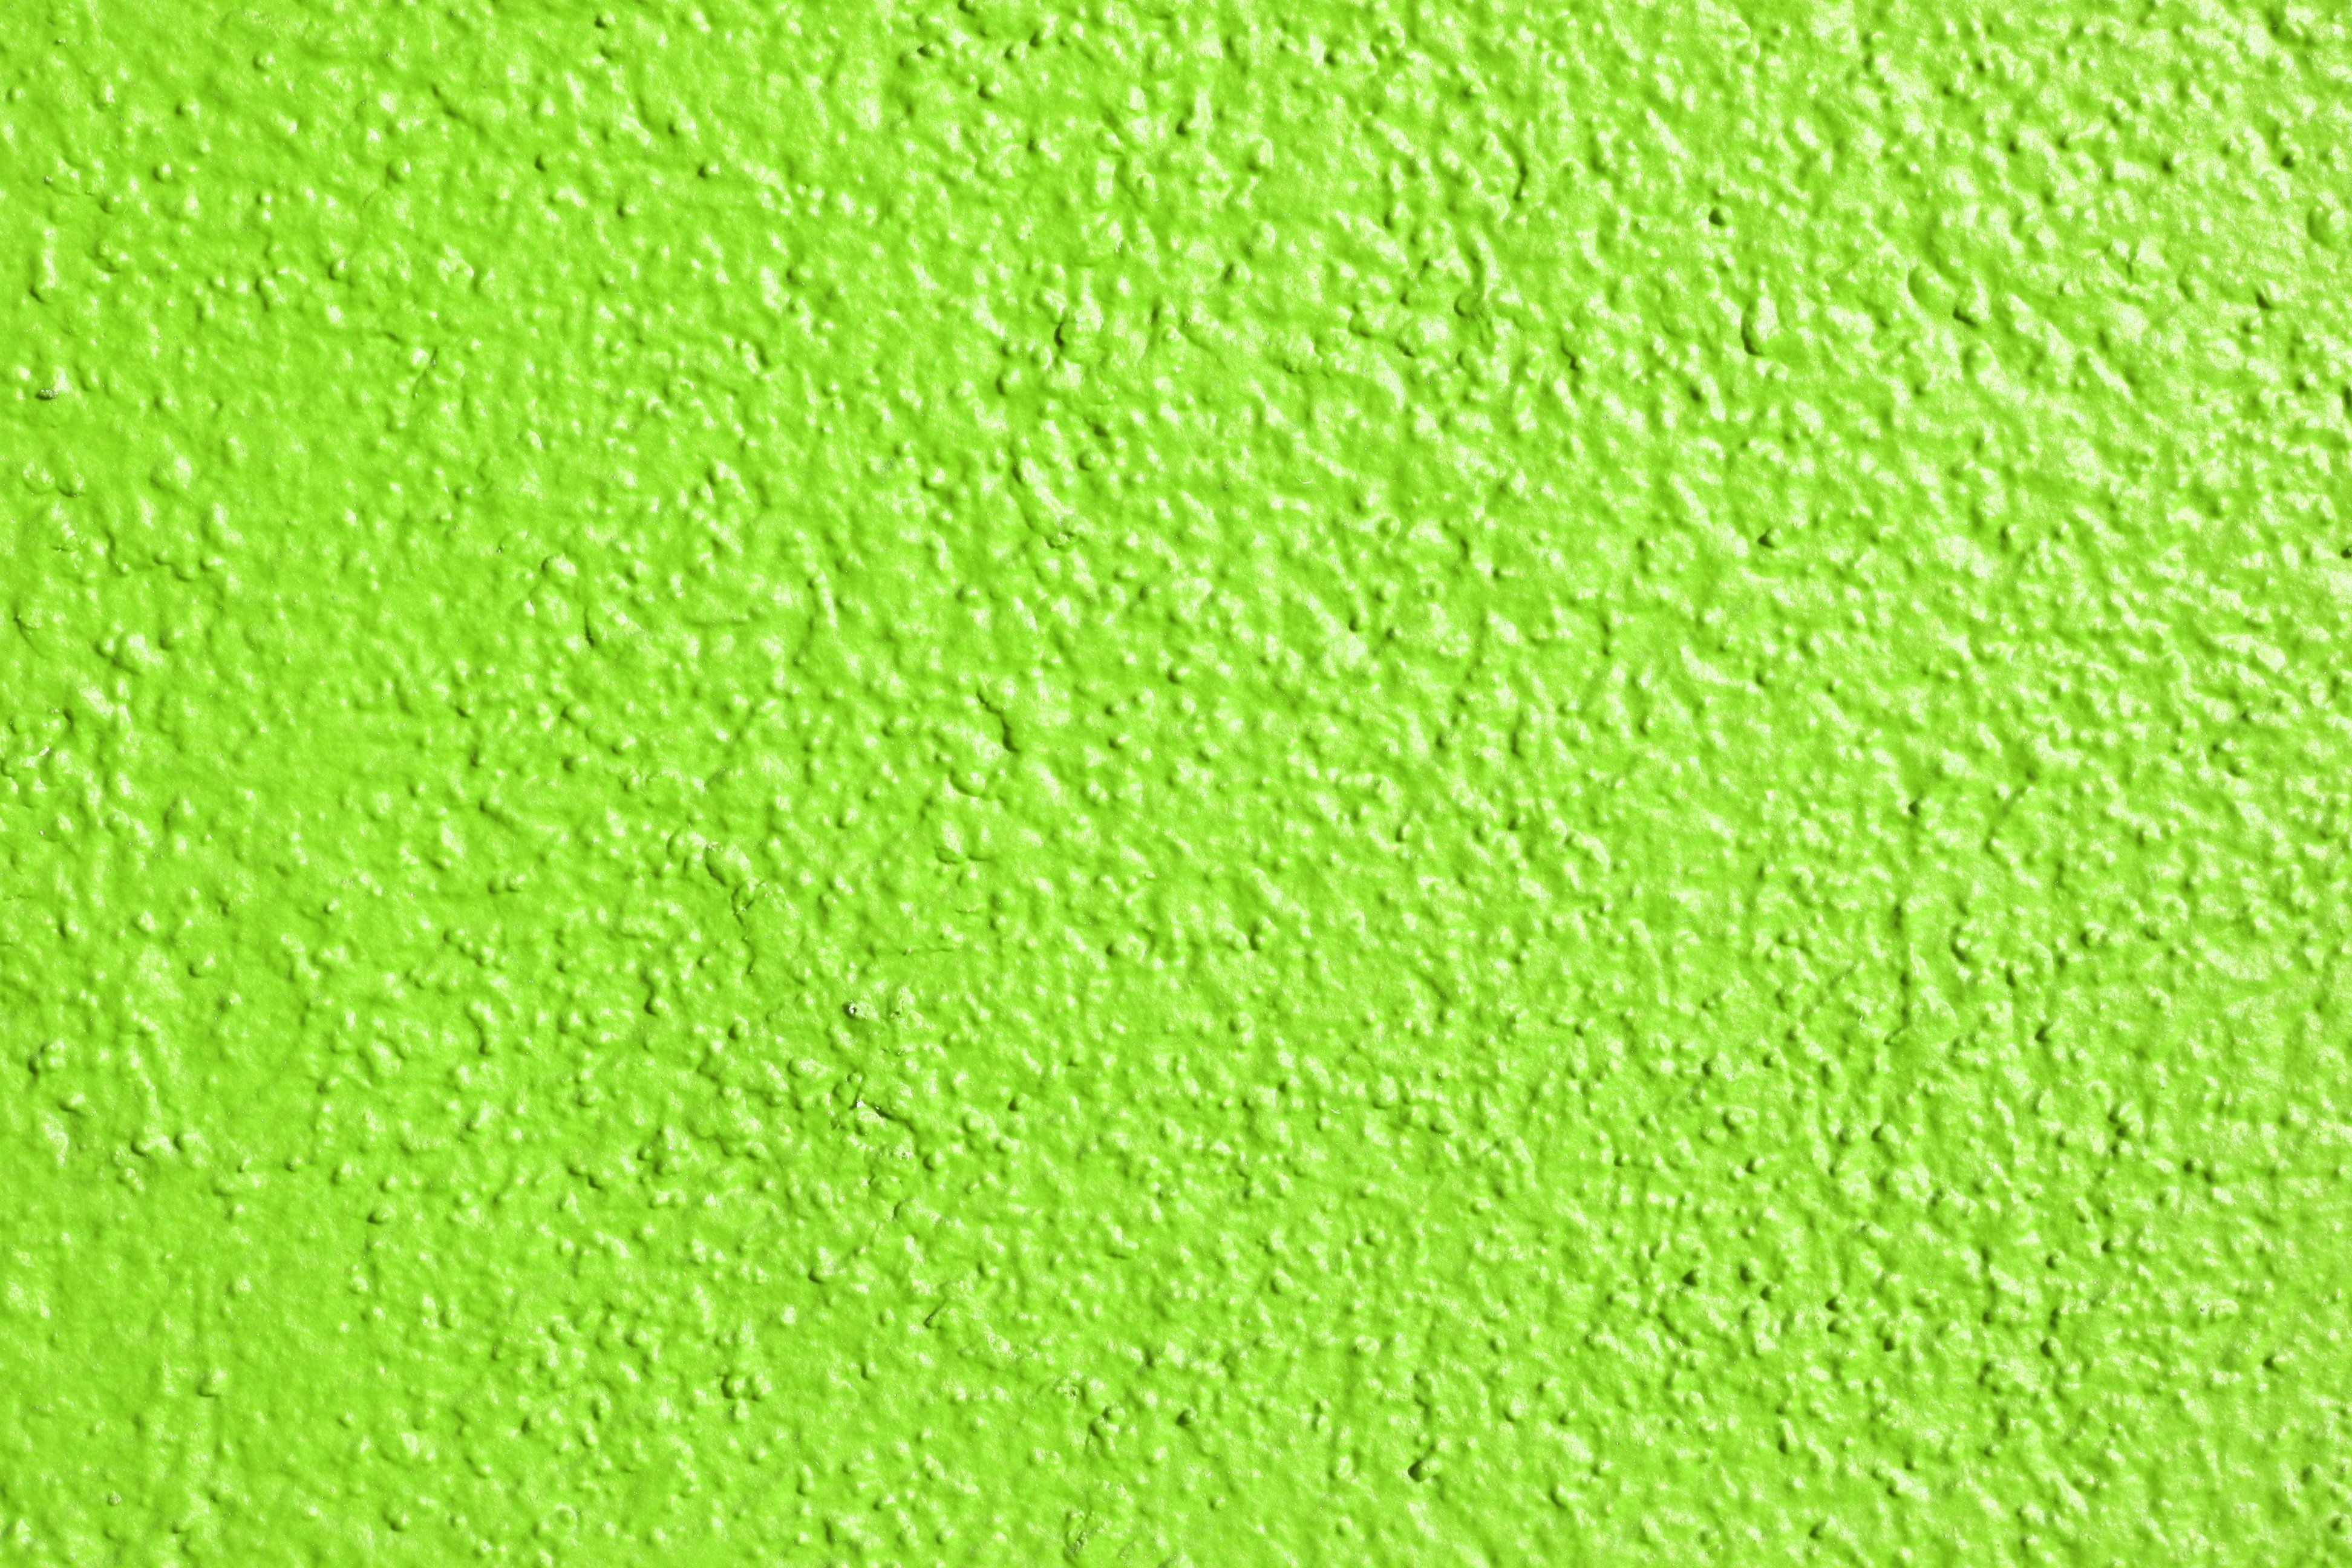 Lime Green Painted Wall Texture Green painted walls